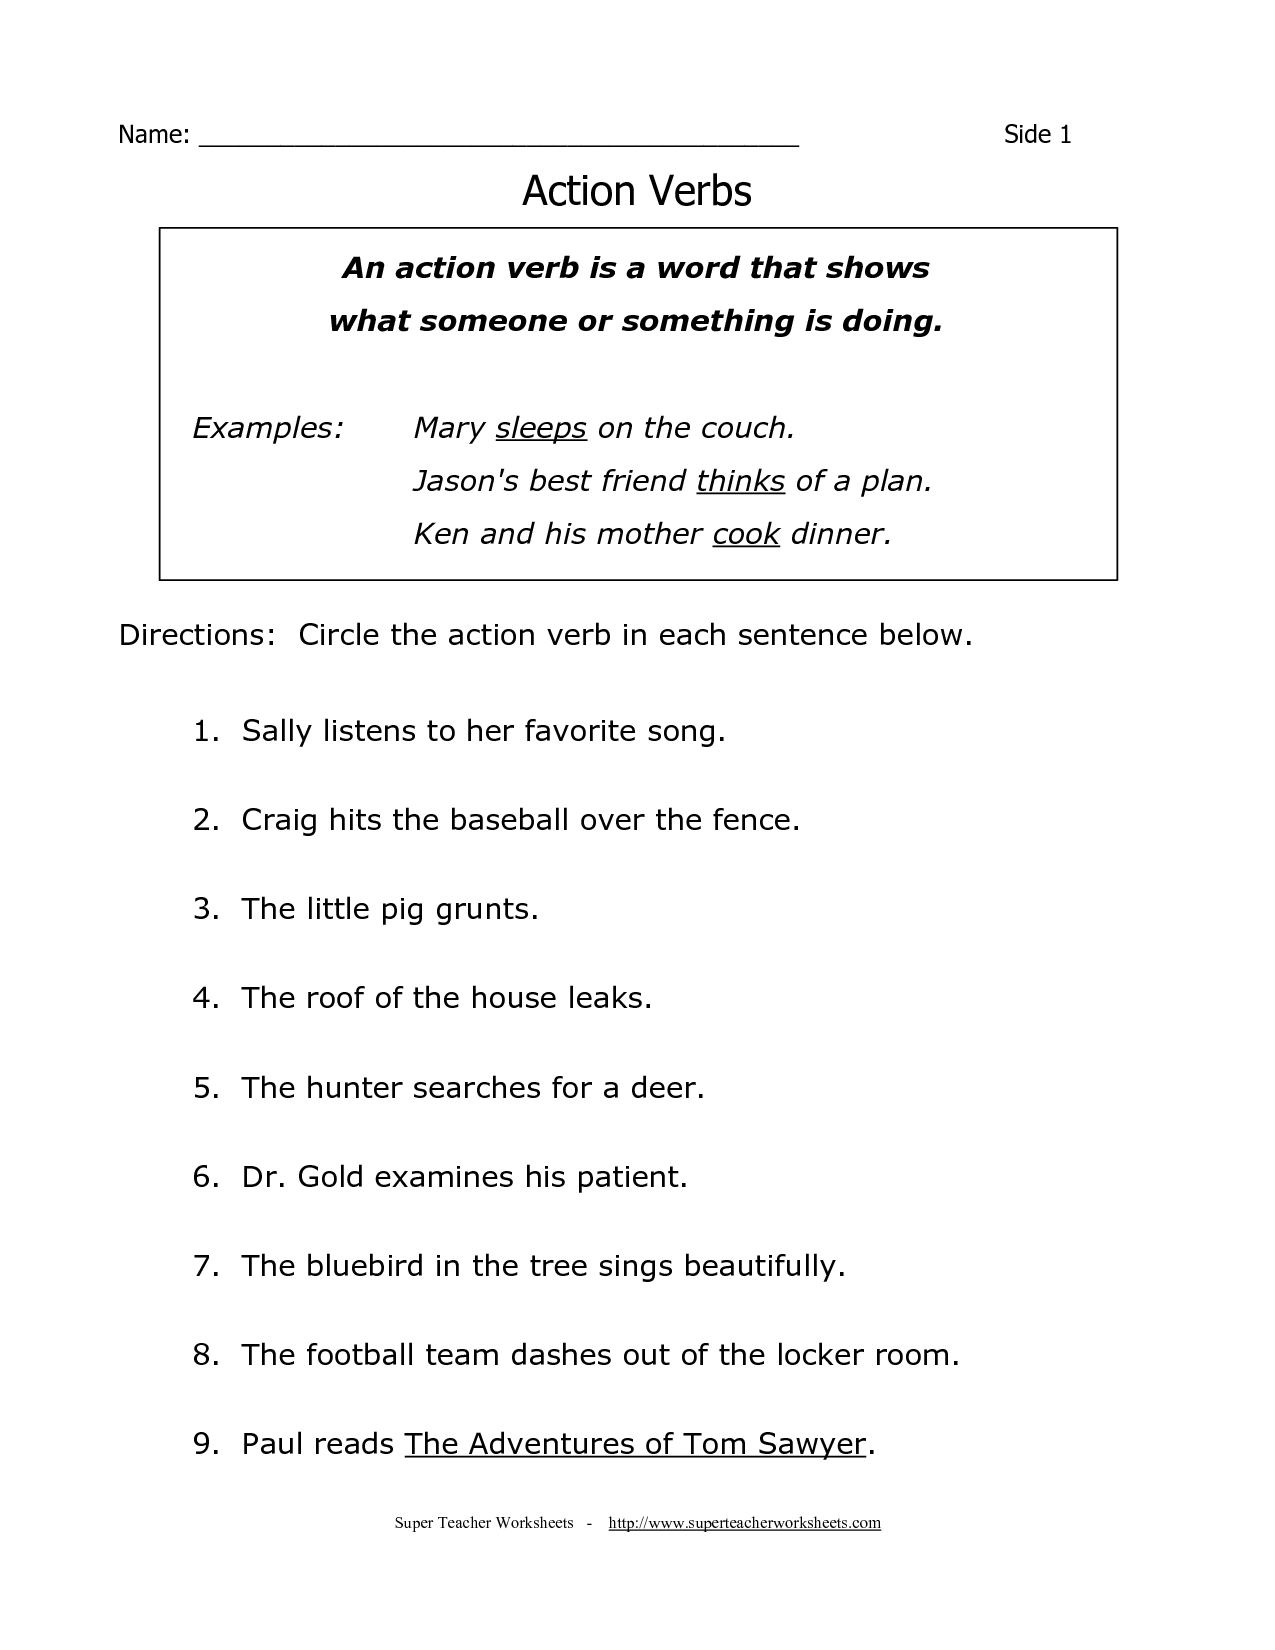 17 Best Images Of English Grammar Worksheets Grade 6